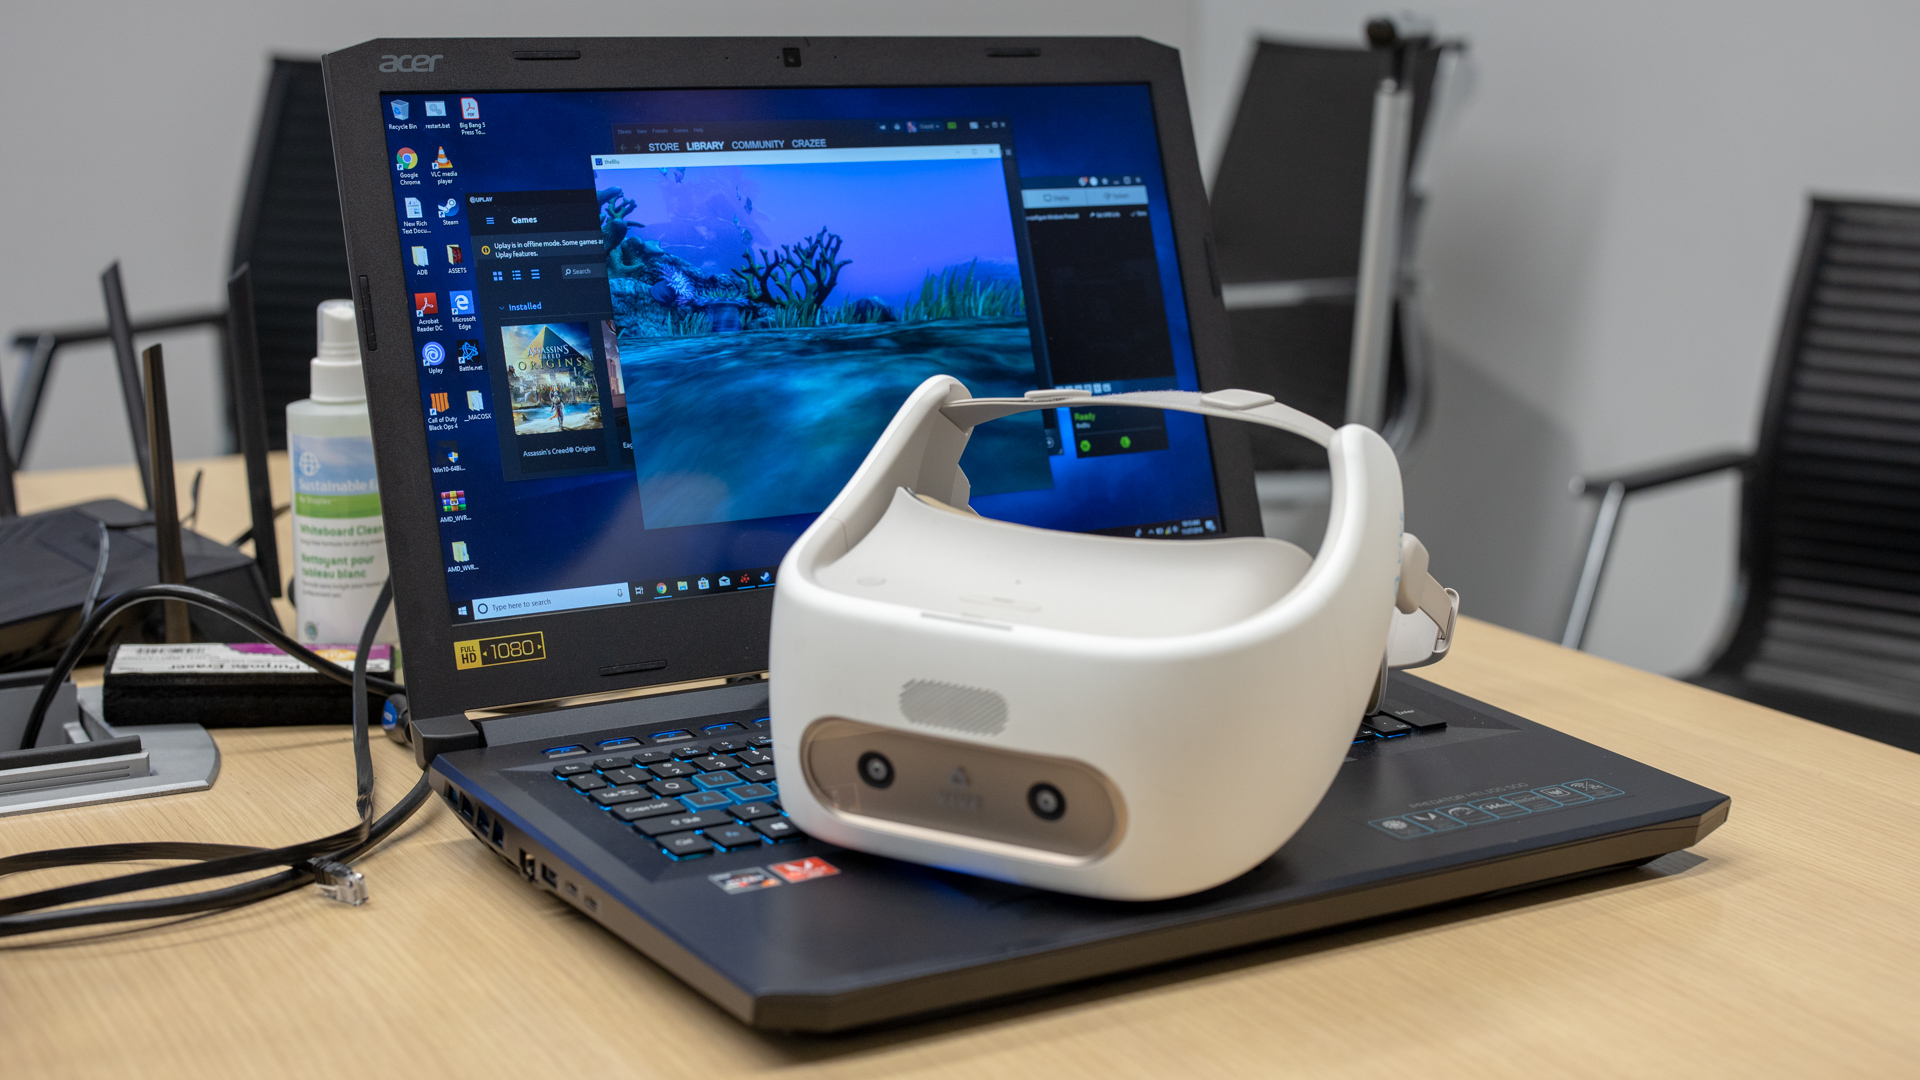 AMD's latest graphics card software lets you stream VR games to your